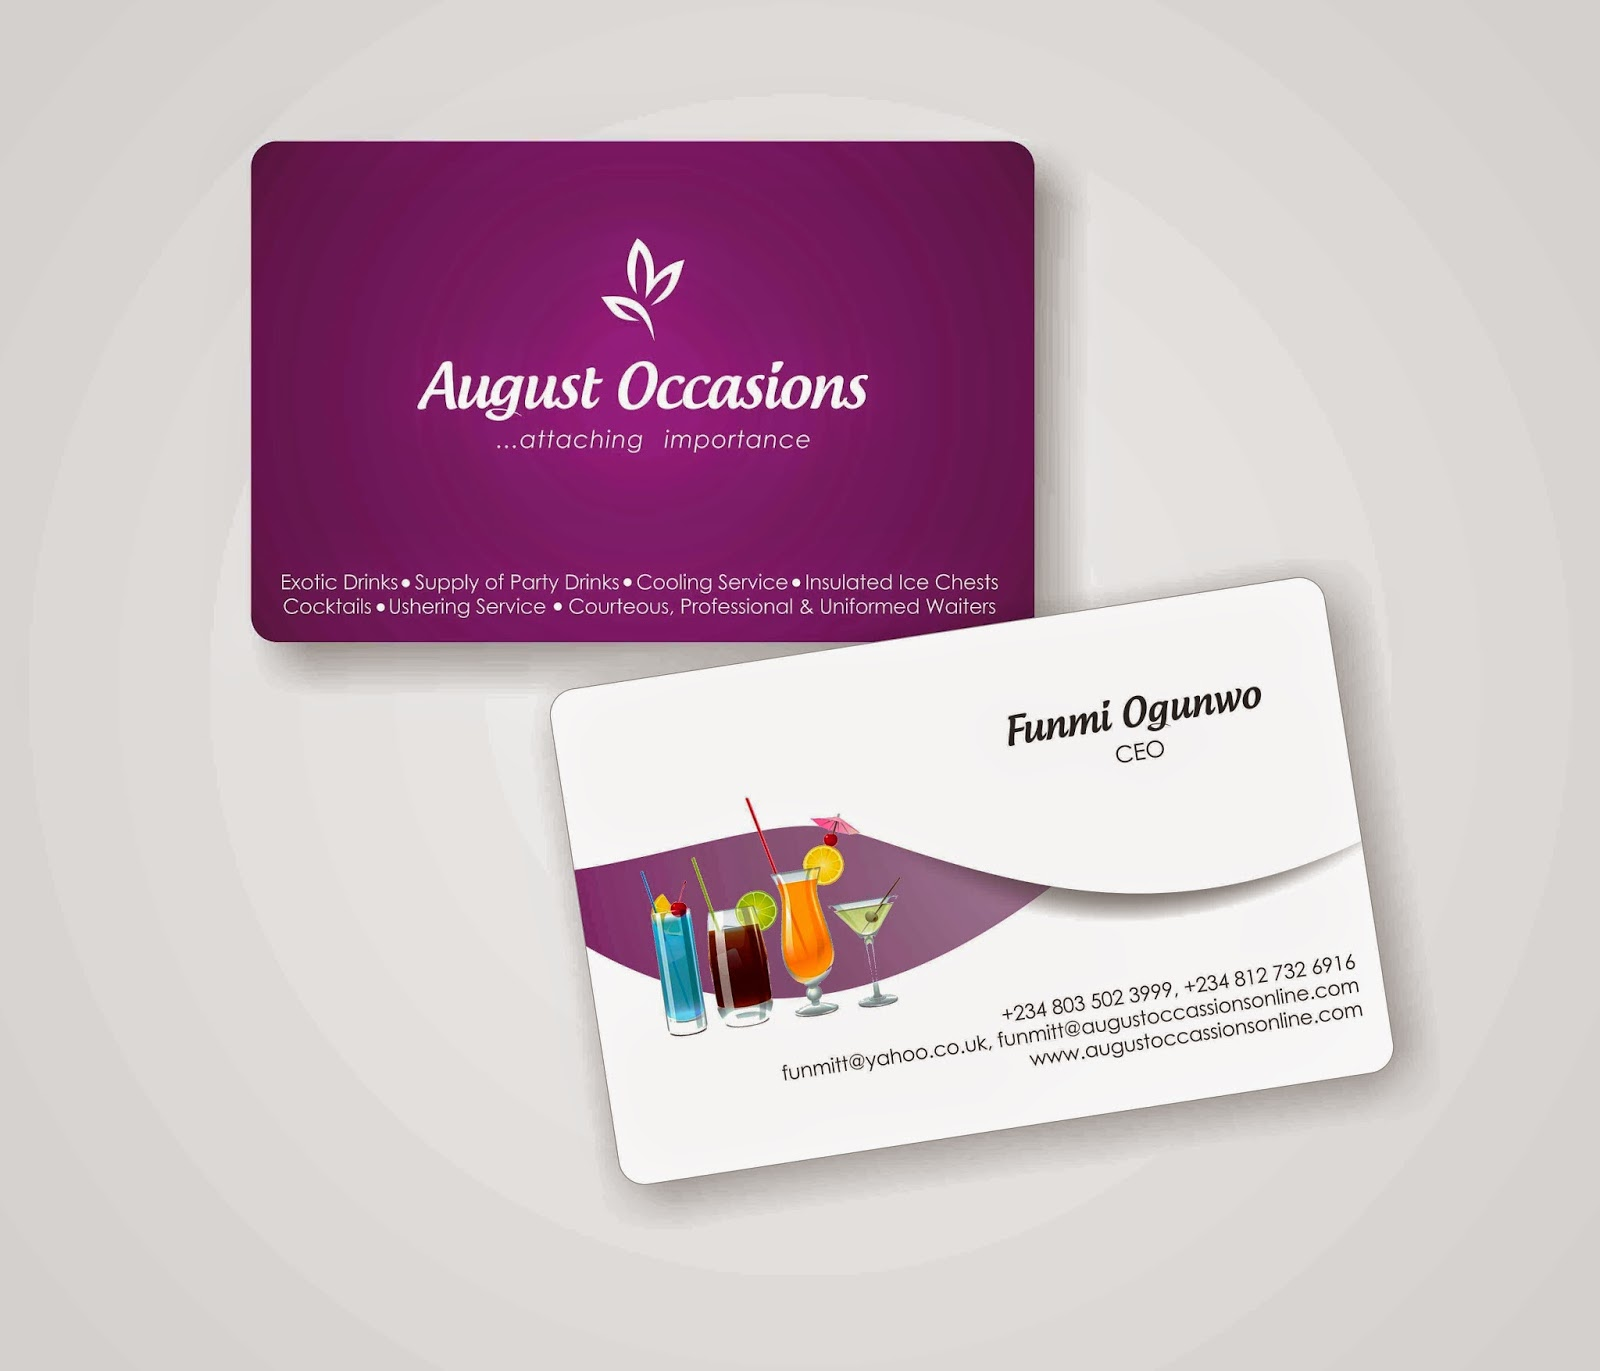 Coreldraw visiting card - Business Card Design Business Card Design For August Occasions Events Management Designed With Coreldraw